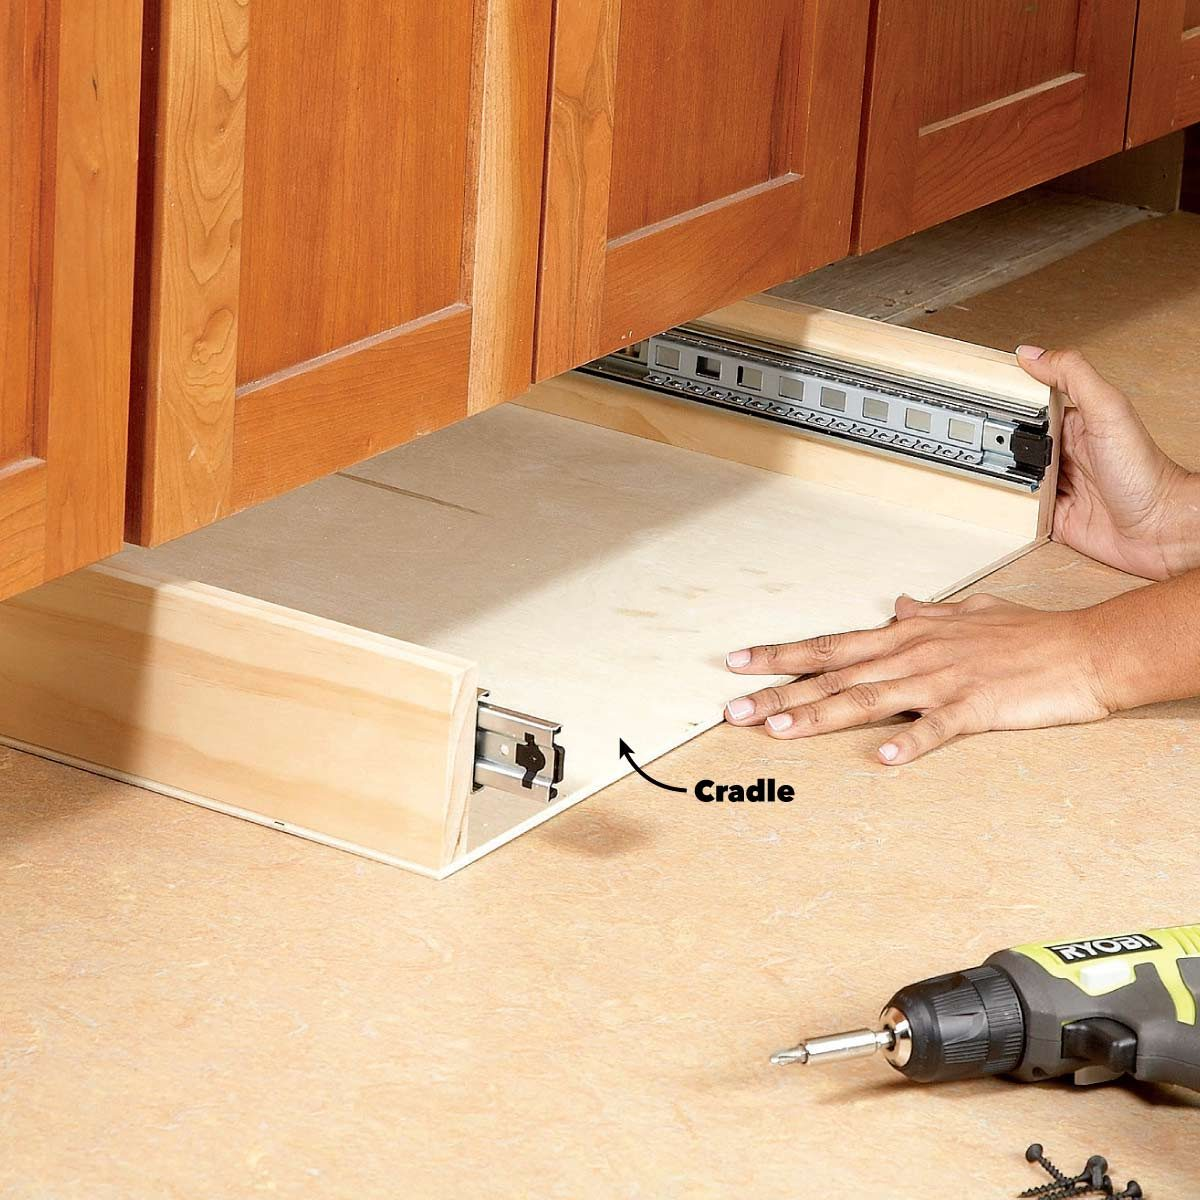 under cabinet drawers install the cradles